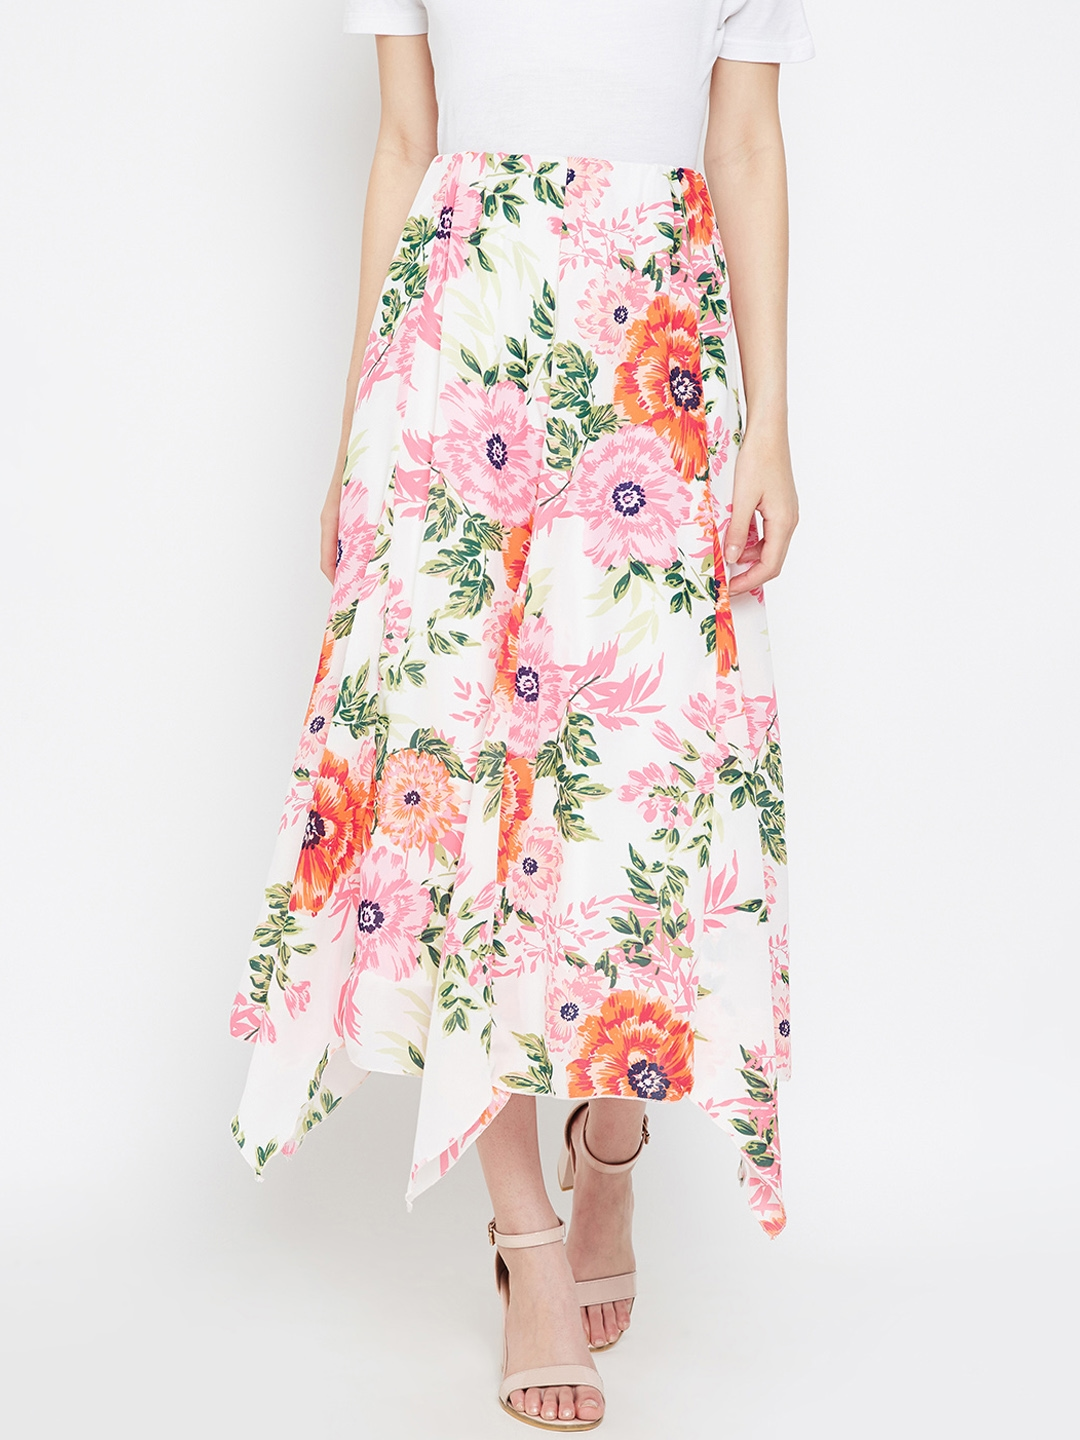 Oxolloxo Women White   Pink Floral Print A Line Skirt